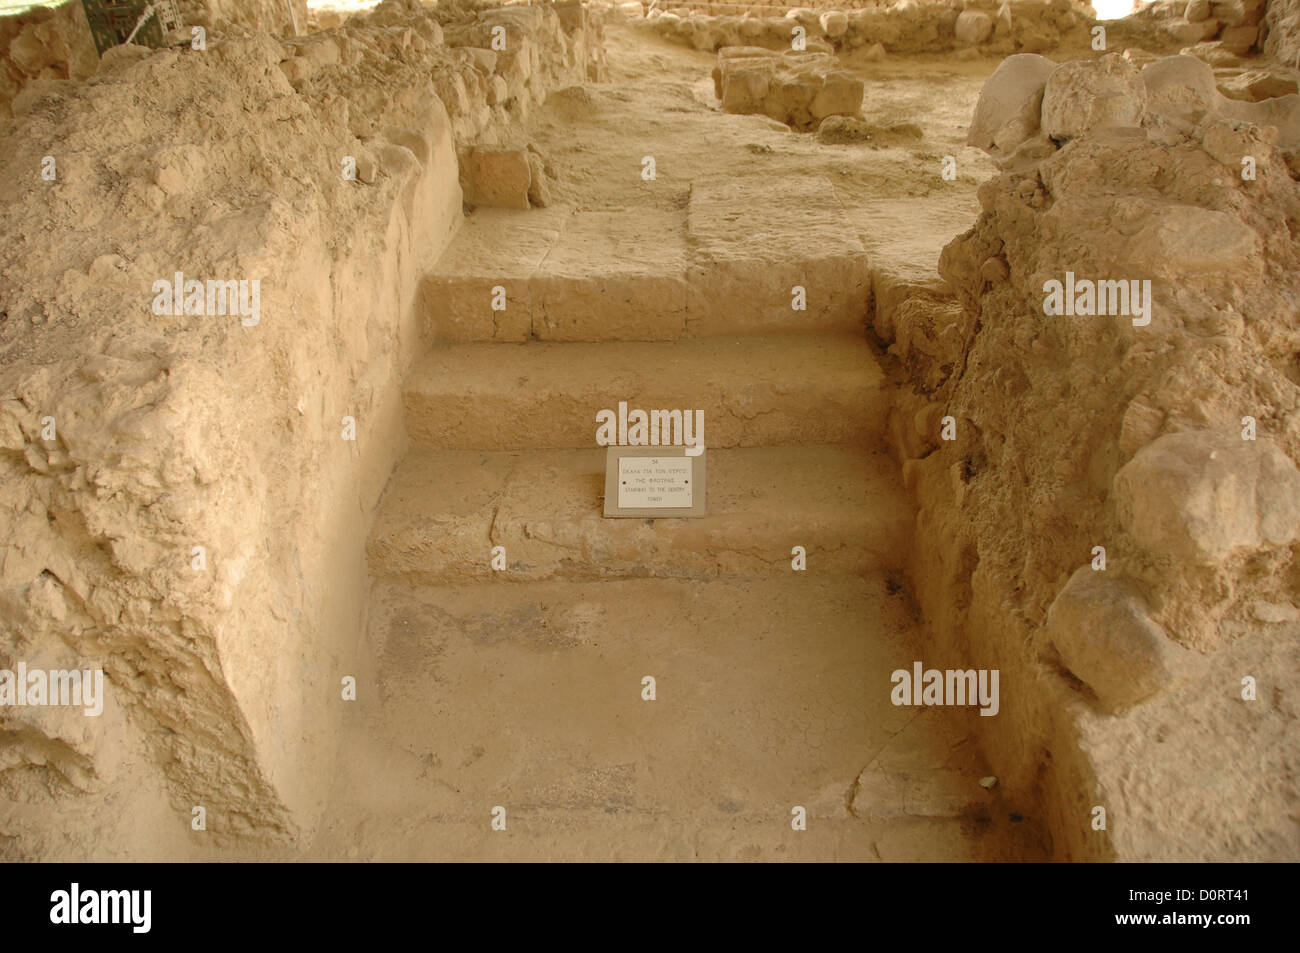 Mycenean Art. Greece. Palace of Nestor, near Pylos. 1300-1200 B.C. Bronze Age. Ruins. Stairway to the sentry tower. - Stock Image